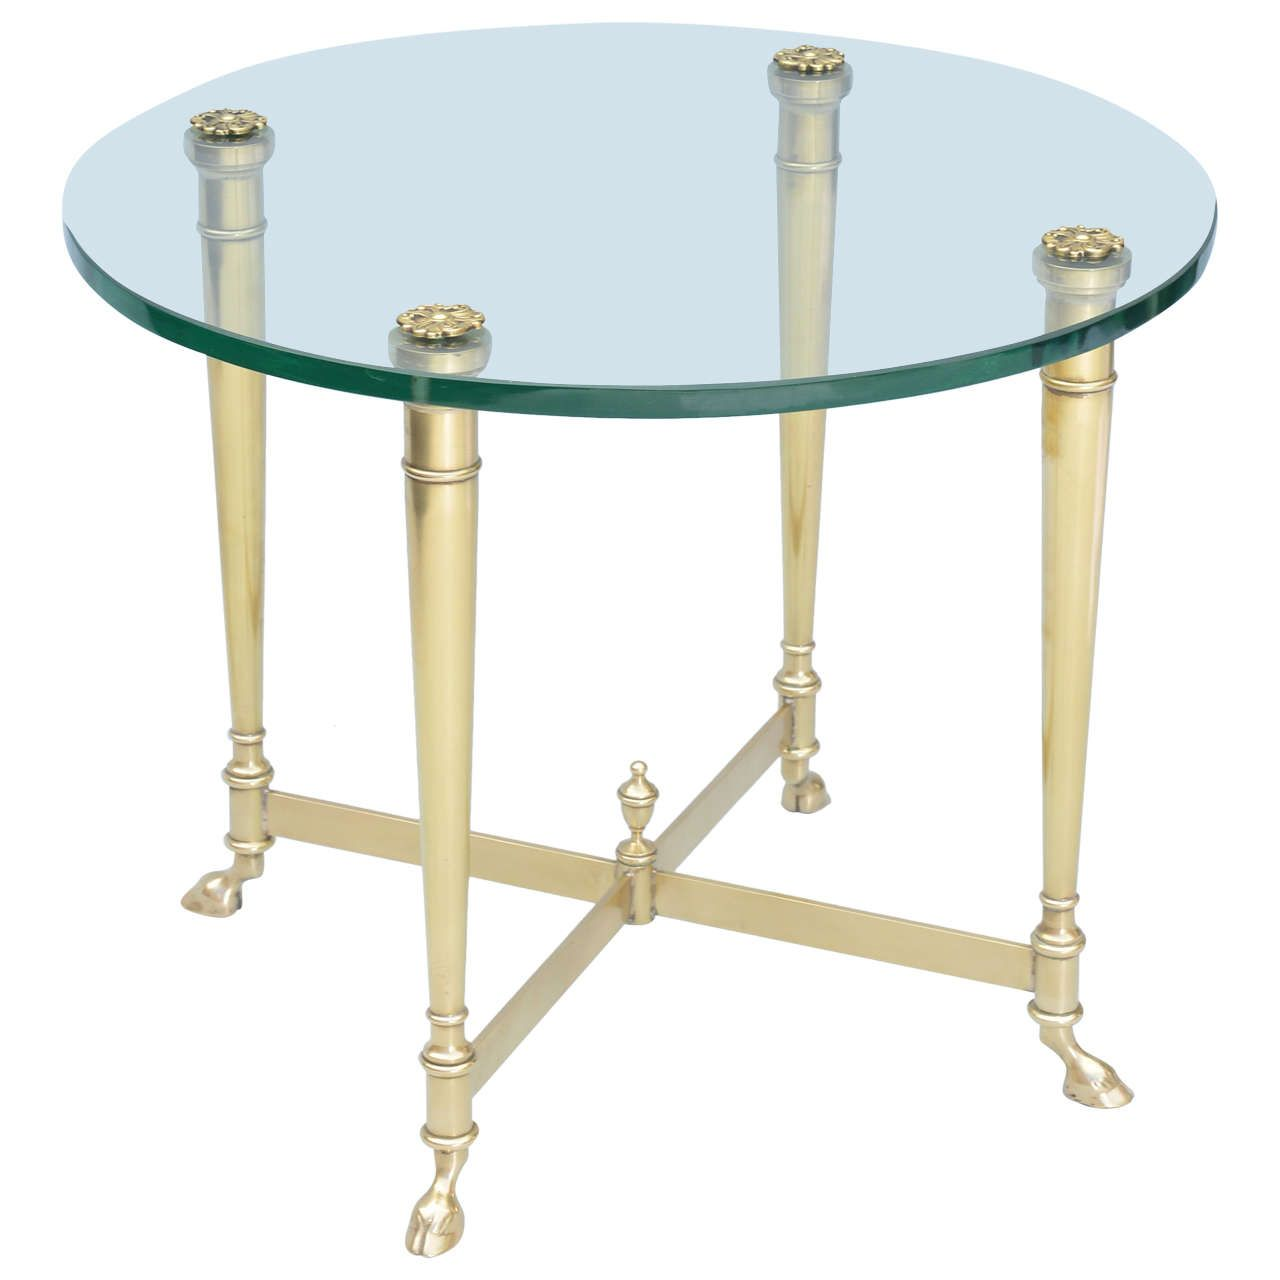 Polished Brass End Table With Glass Top On Hooved Feet Glass End Tables End Tables Modern Table Design [ 1280 x 1280 Pixel ]